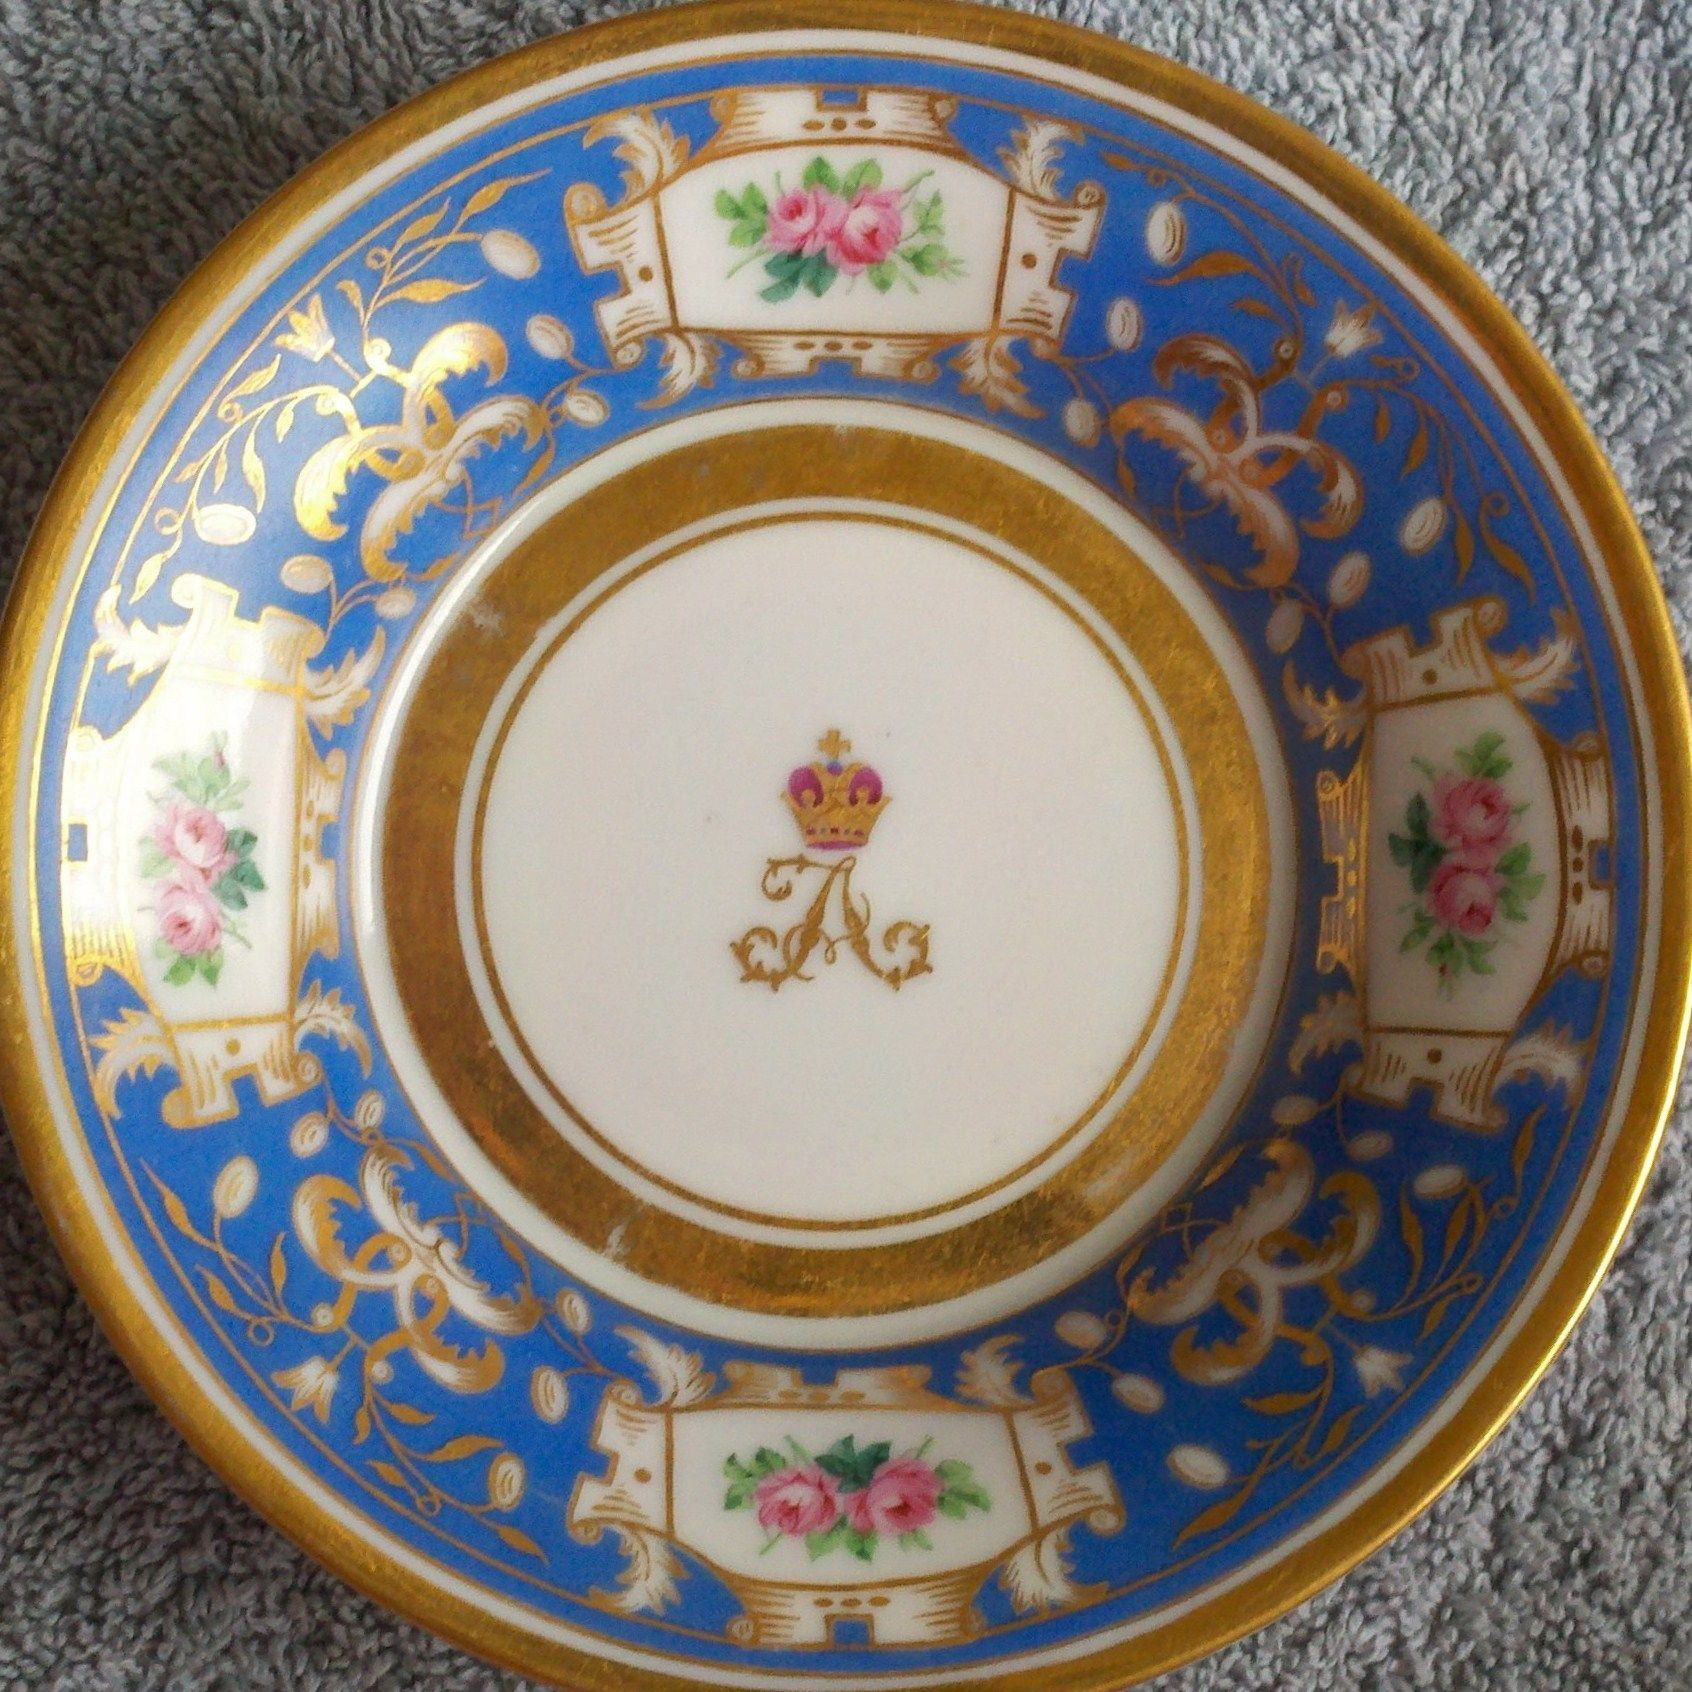 Russian Imperial Porcelain Factory The center of the plate decorated with the crowned Imperial cipher of & Russian Imperial Porcelain Factory The center of the plate decorated ...